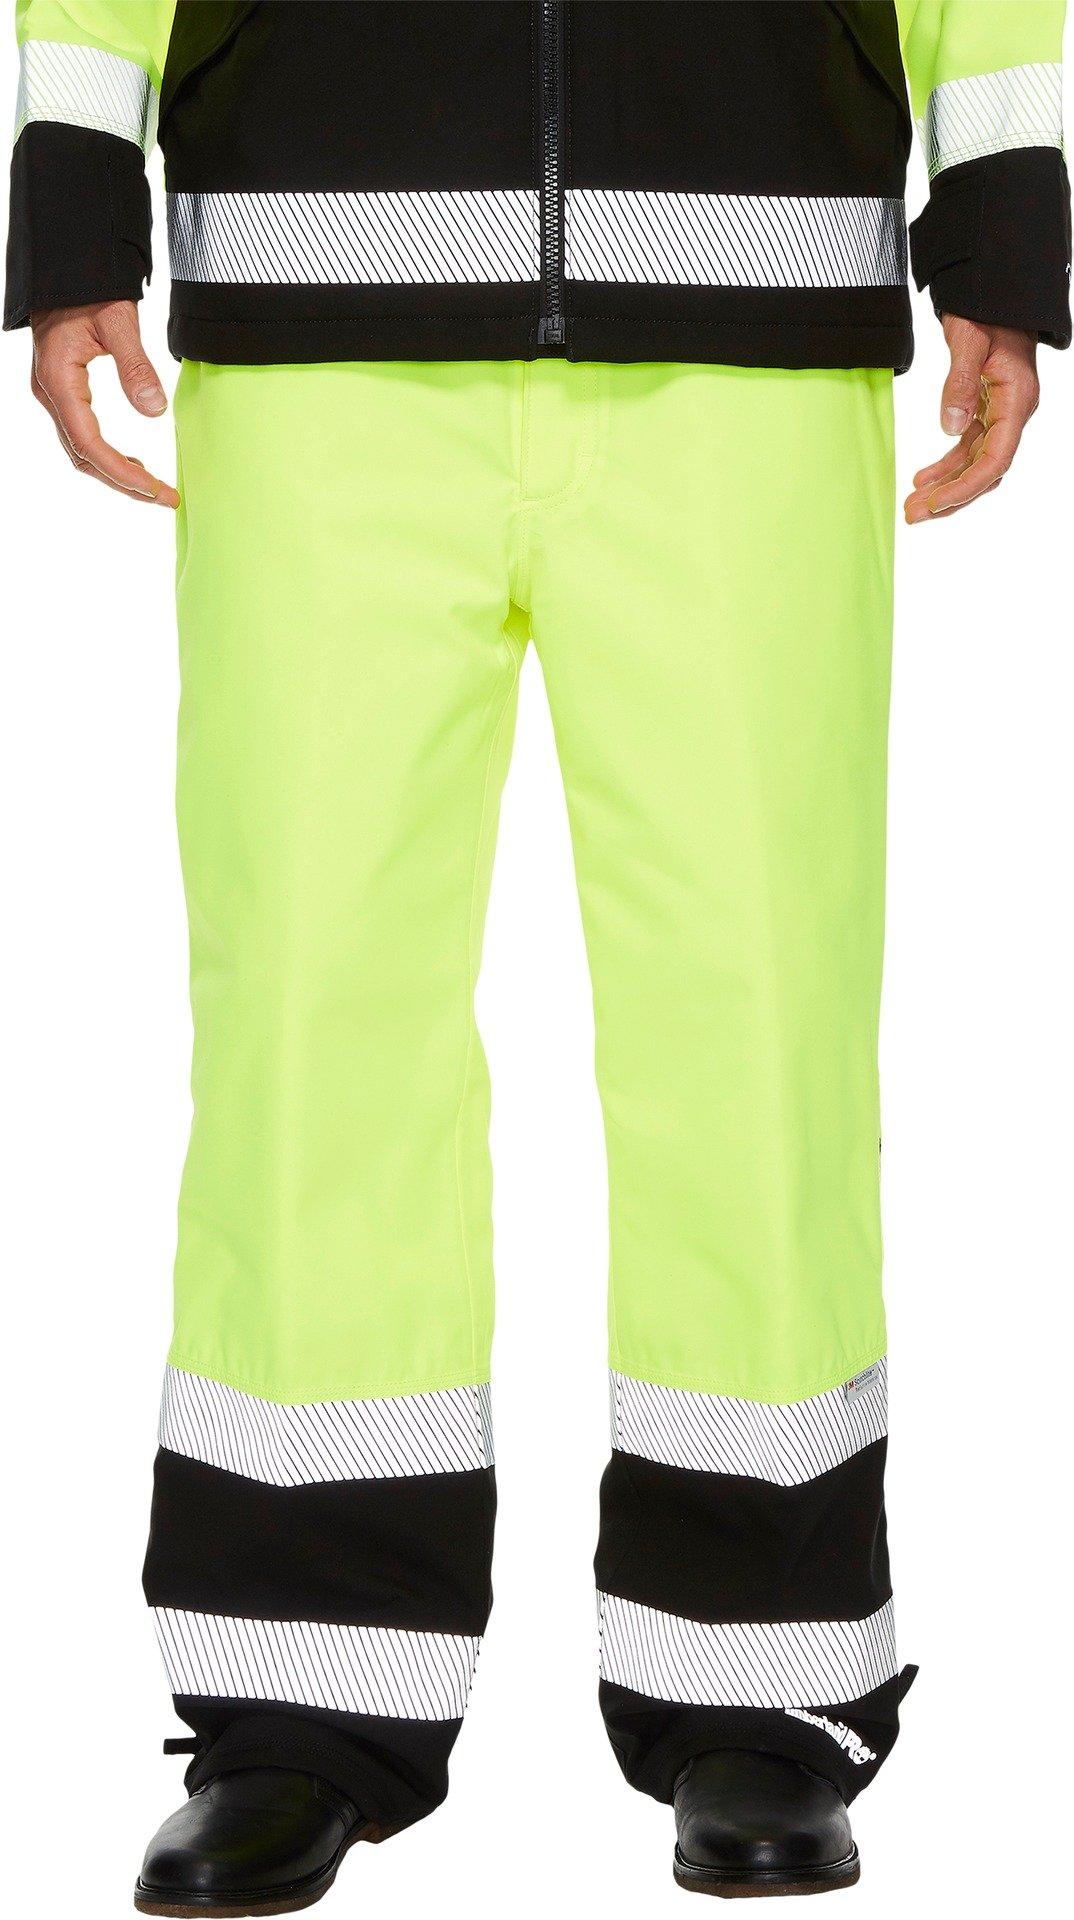 Timberland PRO Men's Work Sight Insulated Pant, High Visibility, X-Large